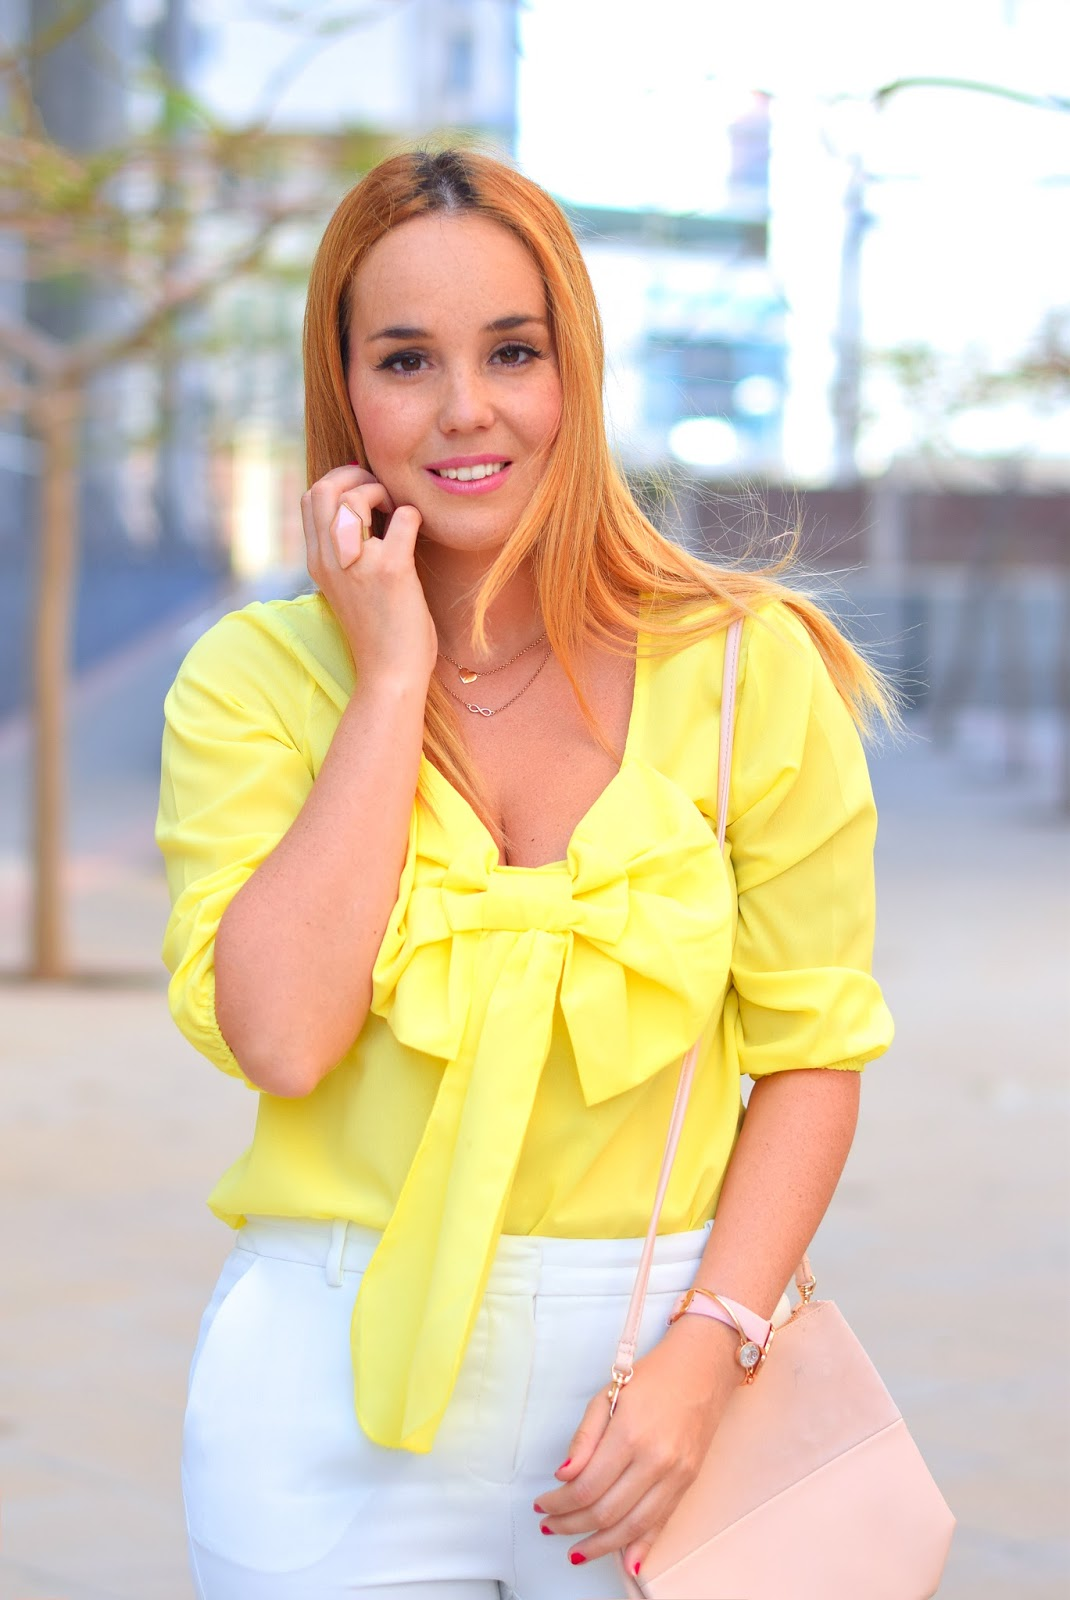 nery hdez, lalalilo, cluse , blonde, white pants, bow blouse, blusa con lazo